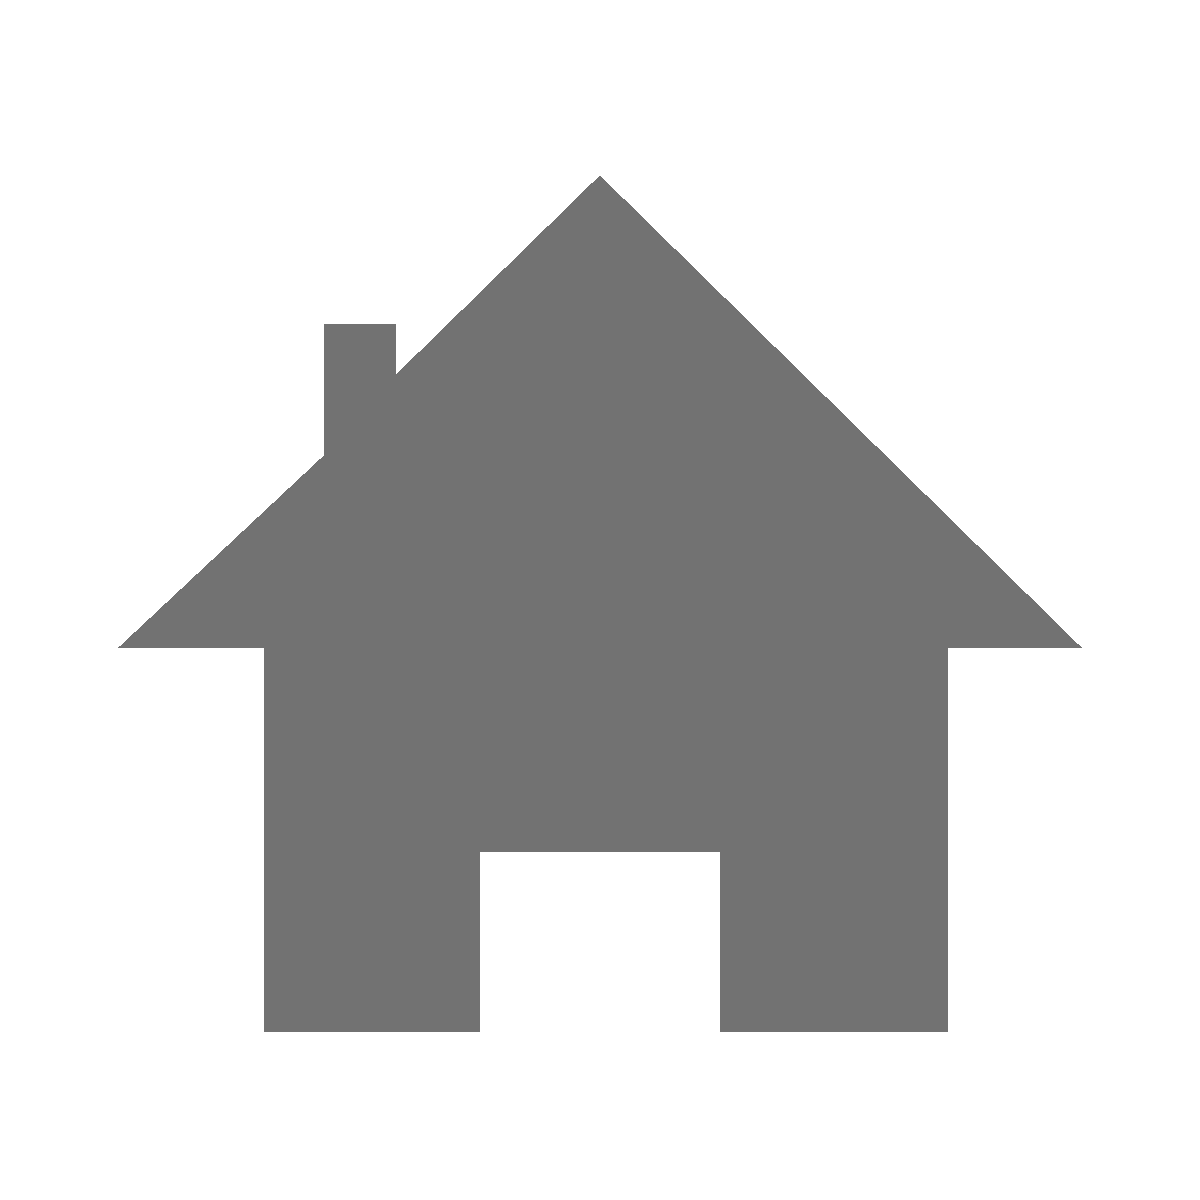 Home Icon For Website Transparent Www Imgkid Com The